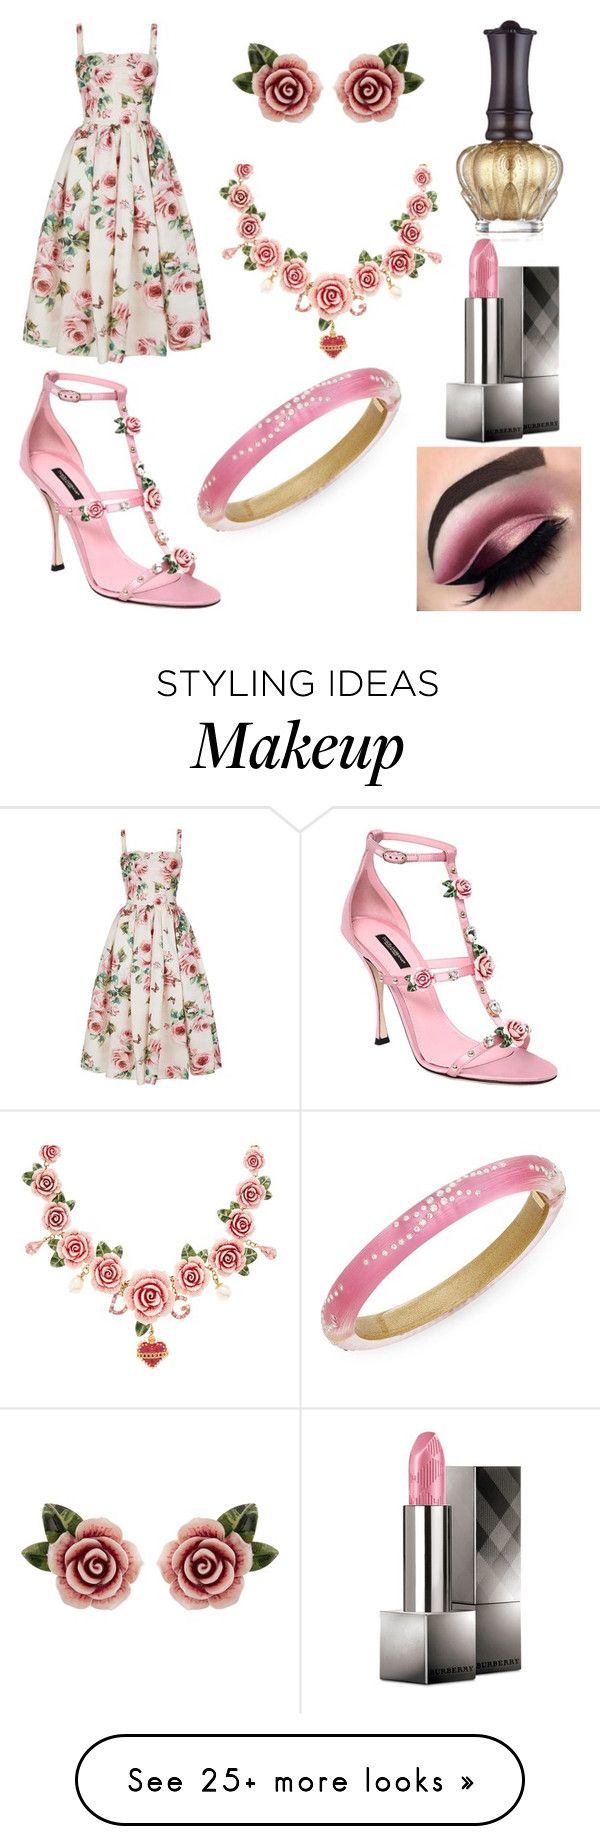 """""""Soft Rose"""" by zexalrose on Polyvore featuring Dolce&Gabbana, Anna Sui, Burberry, Beauty Bakerie and Alexis Bittar"""